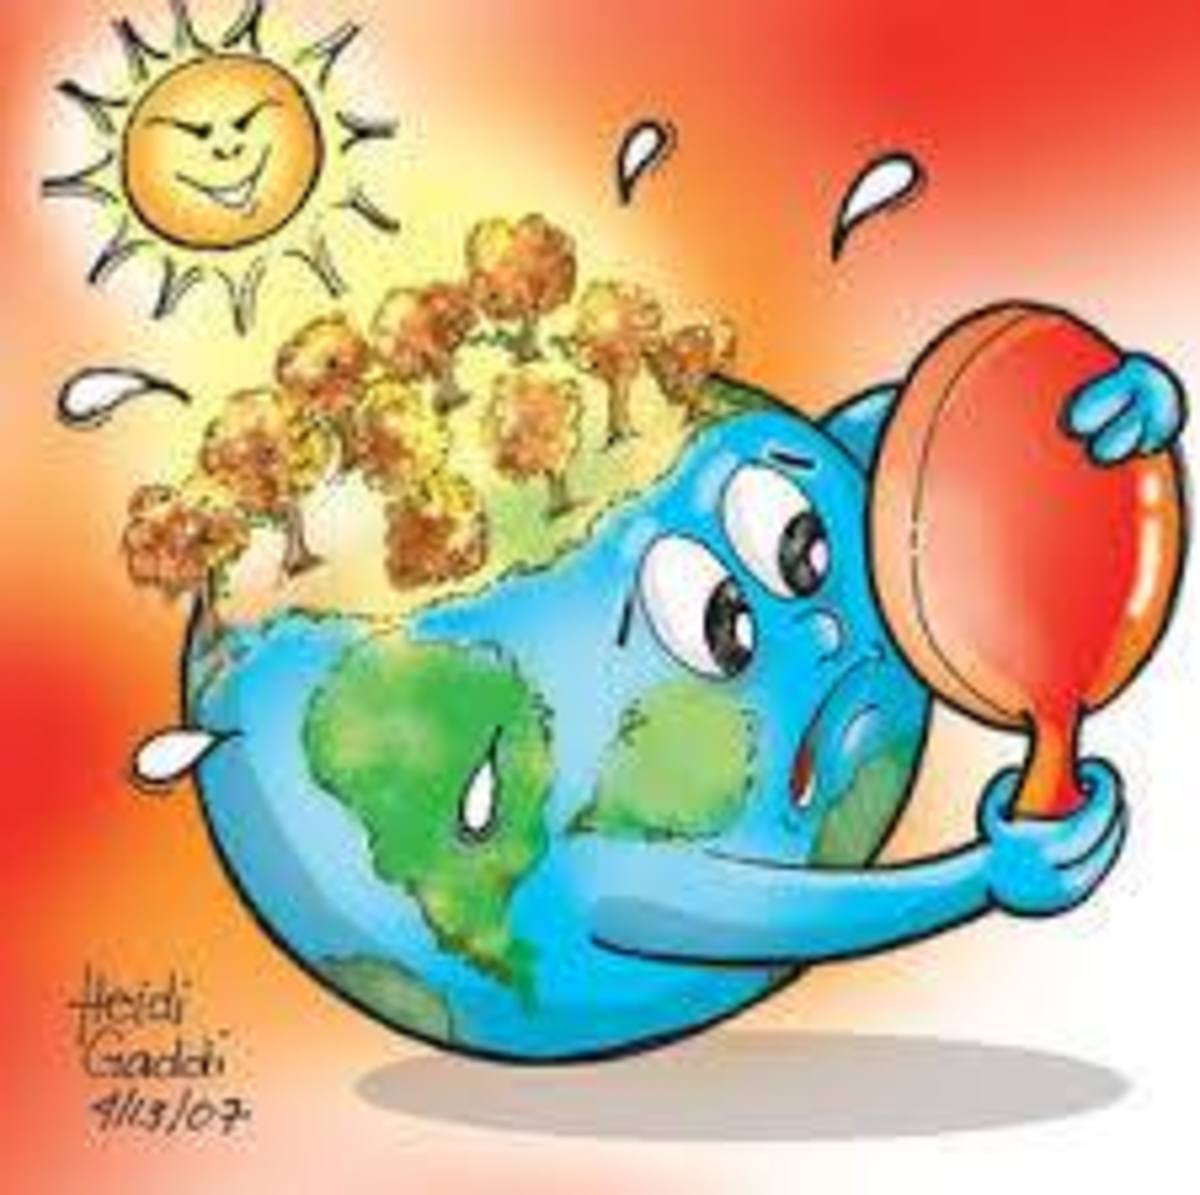 Global warming is increasing and we see more severe floods, storms and droughts with accompanied loss of life. Climate change alters the composition of the global atmosphere and which is in addition to natural climate variability over comparable peri